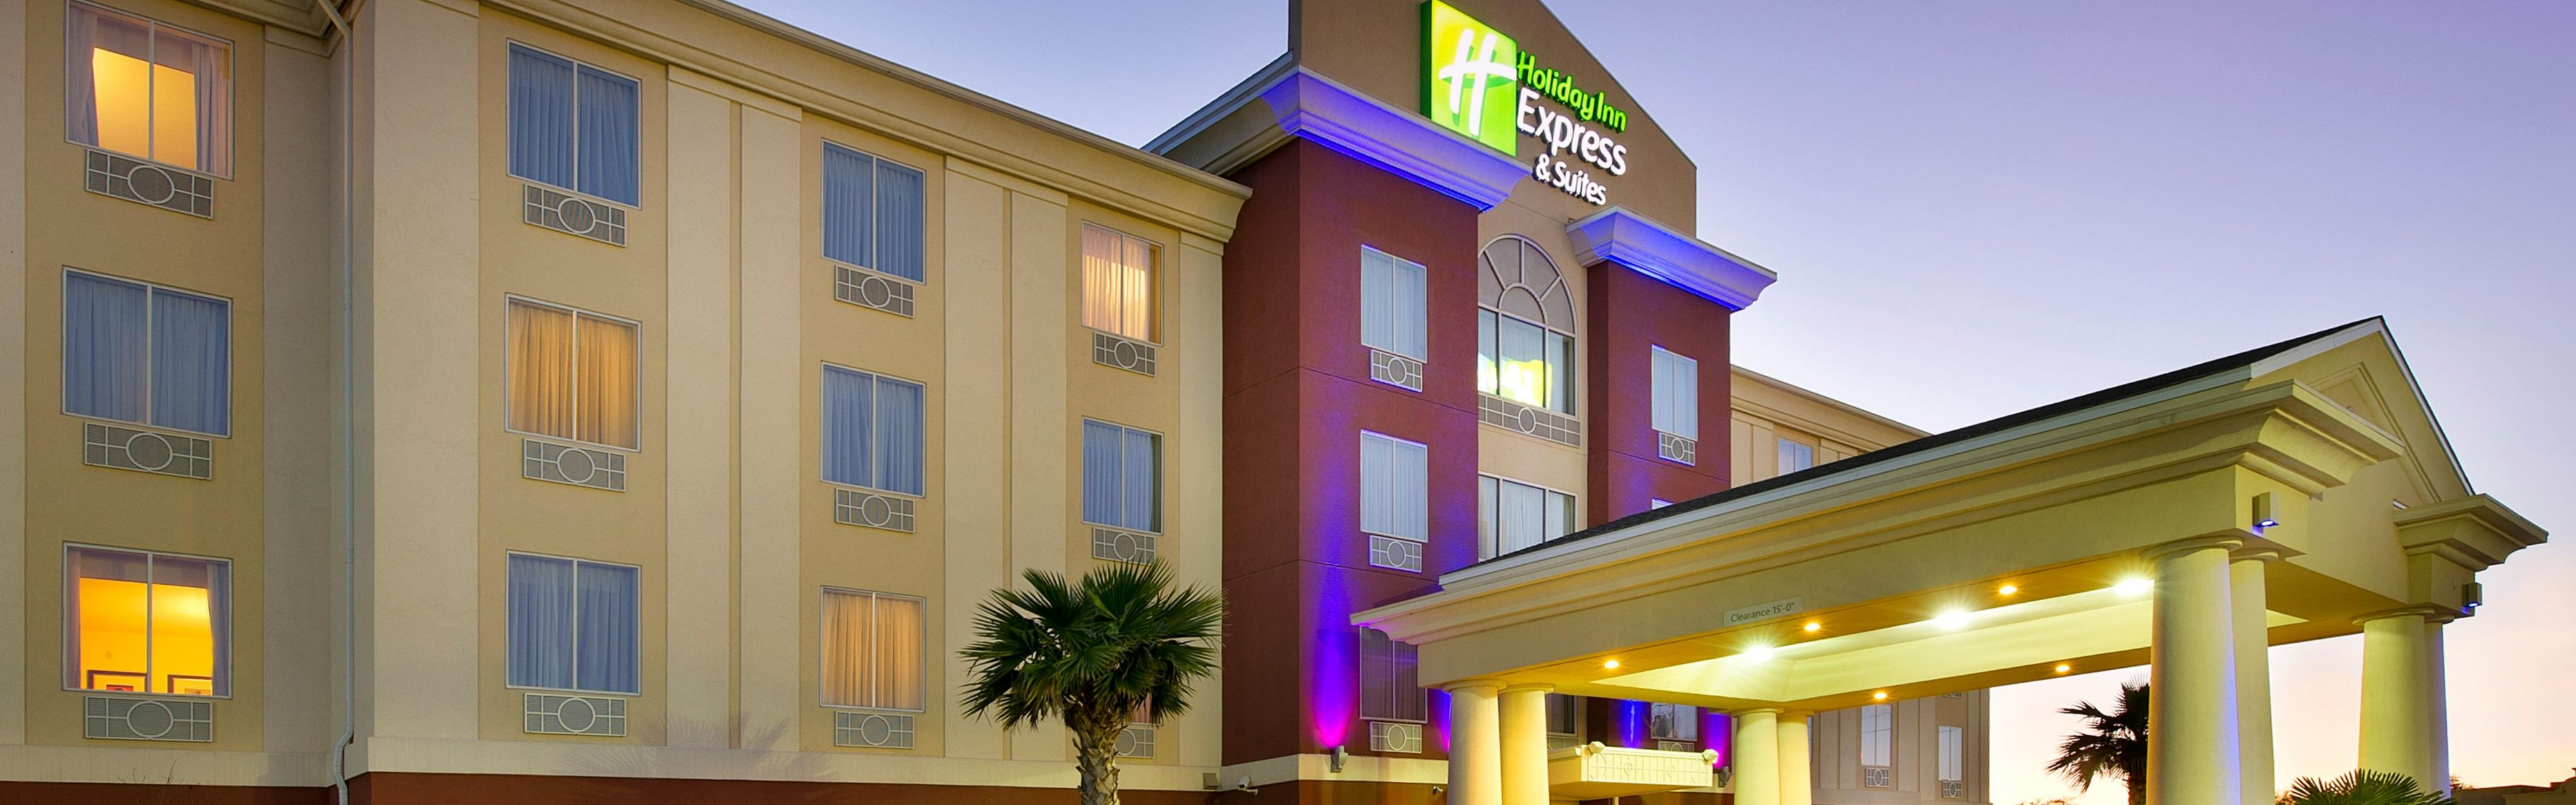 Holiday Inn Express & Suites Uvalde image 0